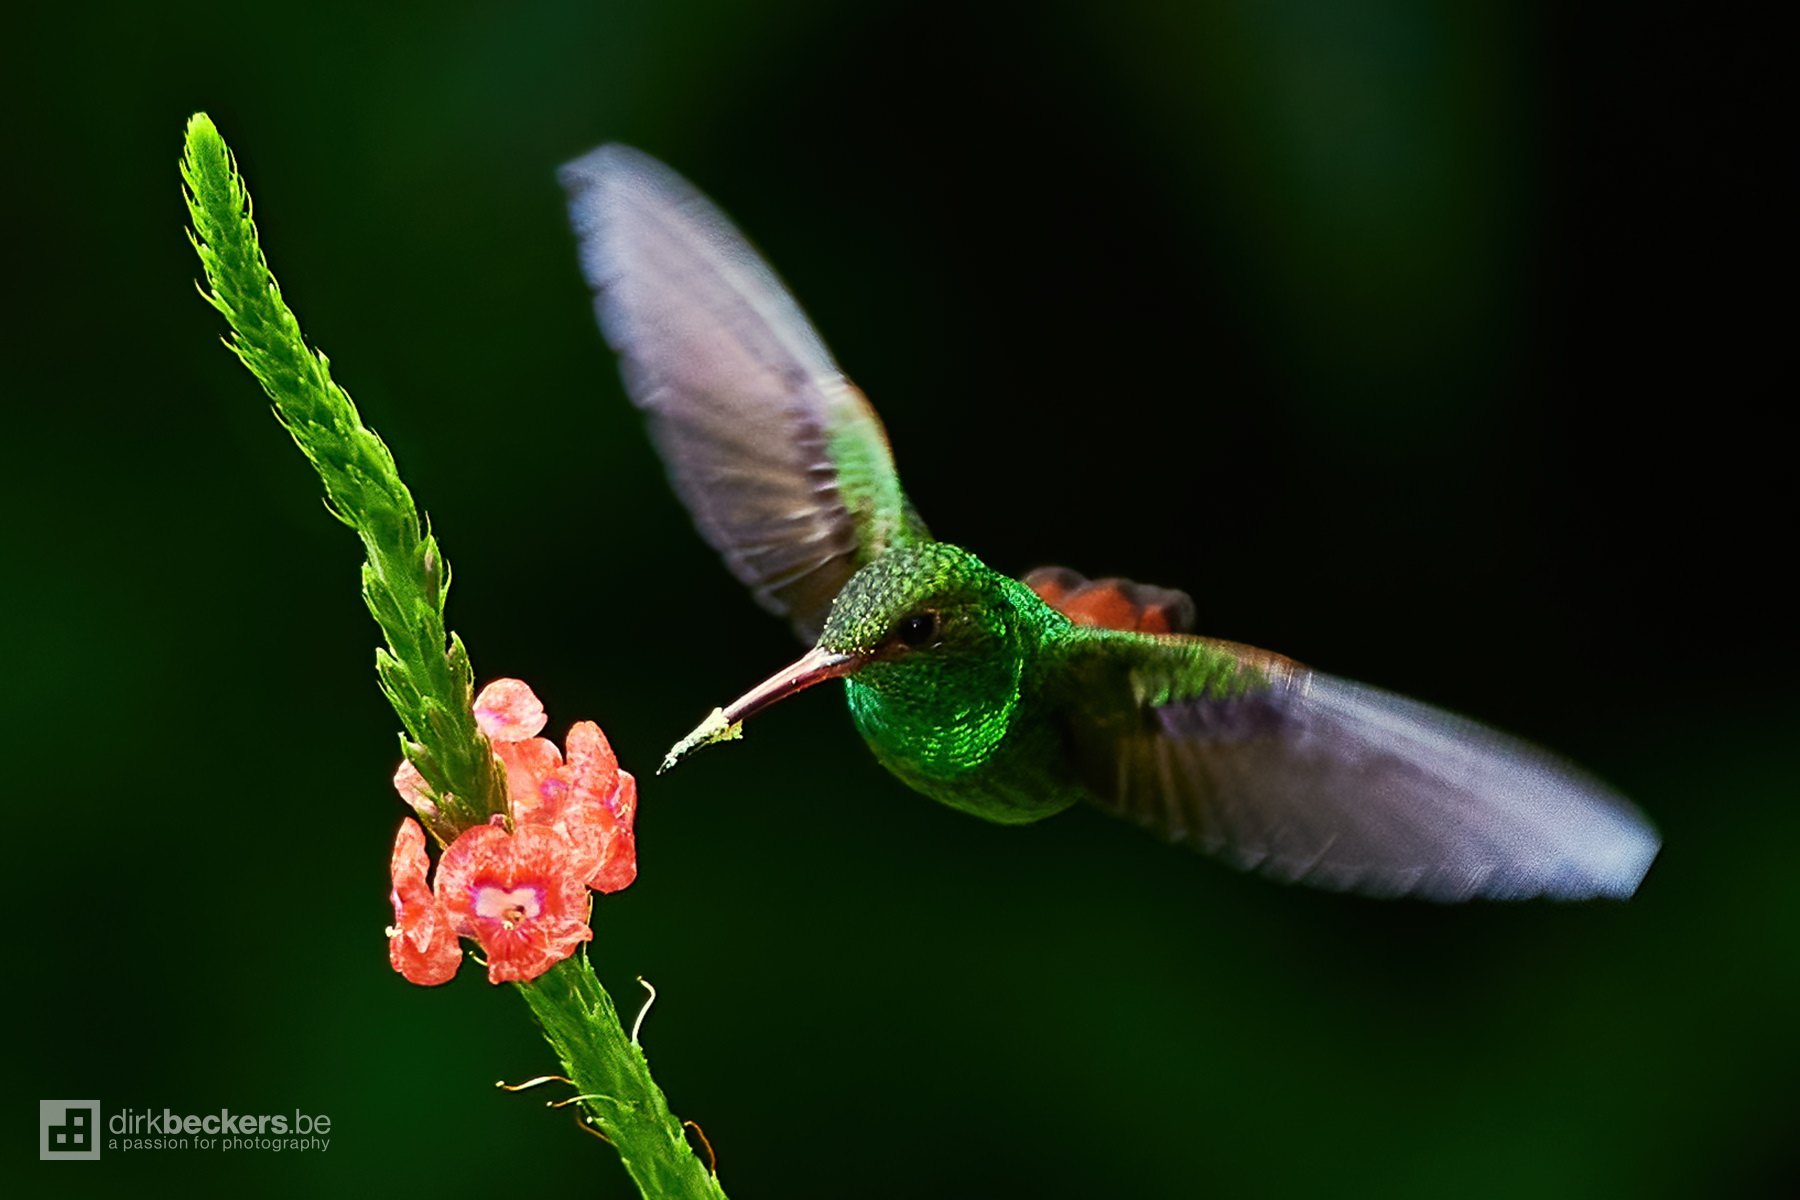 Rufous-tailed Hummingbird drinking nectar nearby the Arenal Volcano in Costa Rica.